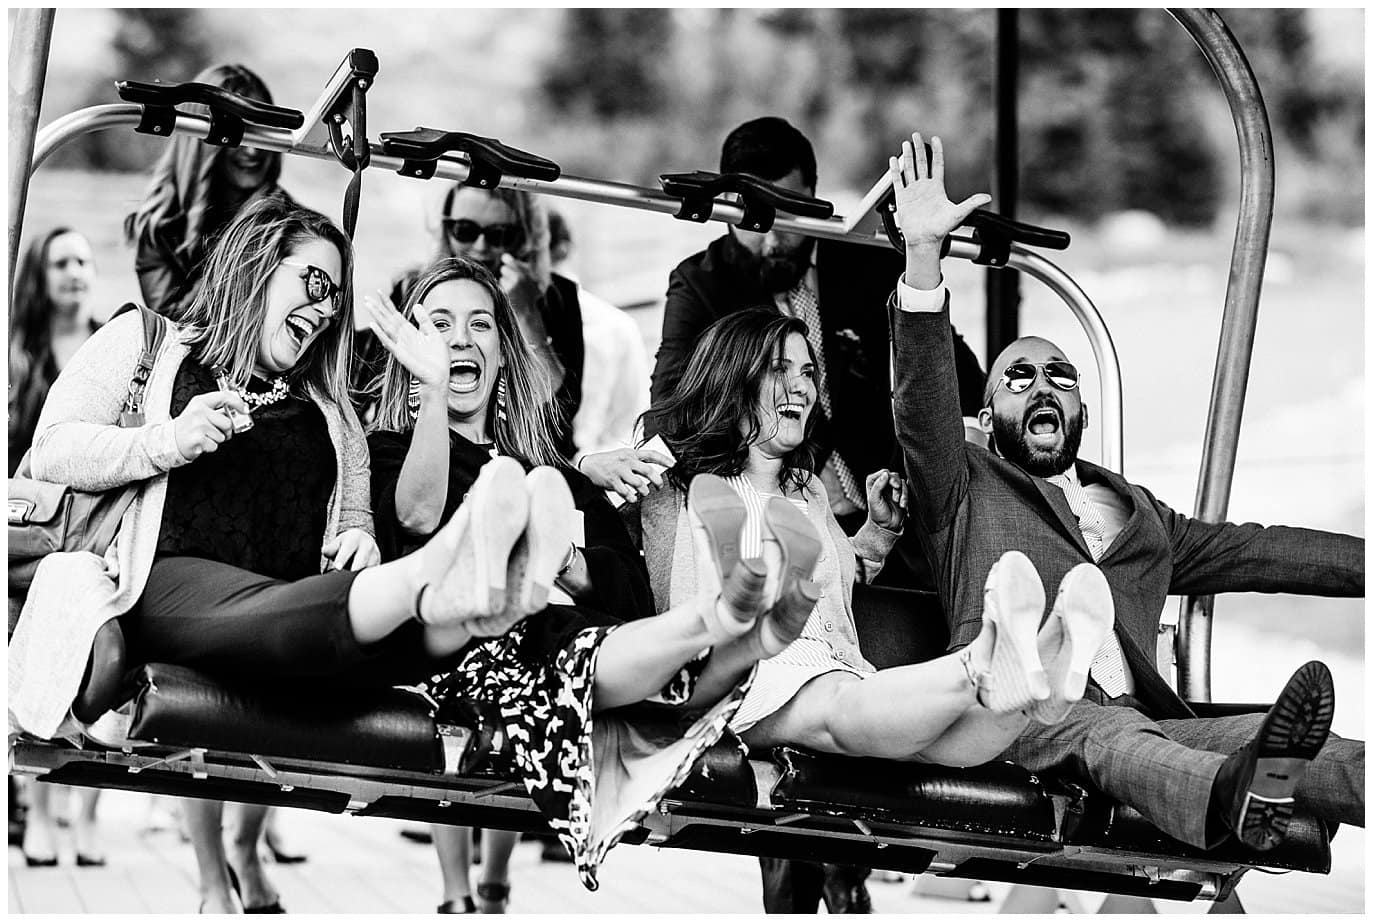 guests boarding chair lifts at Arapahoe Basin Black Mountain Lodge Wedding by Dillon Wedding Photographer Jennie Crate